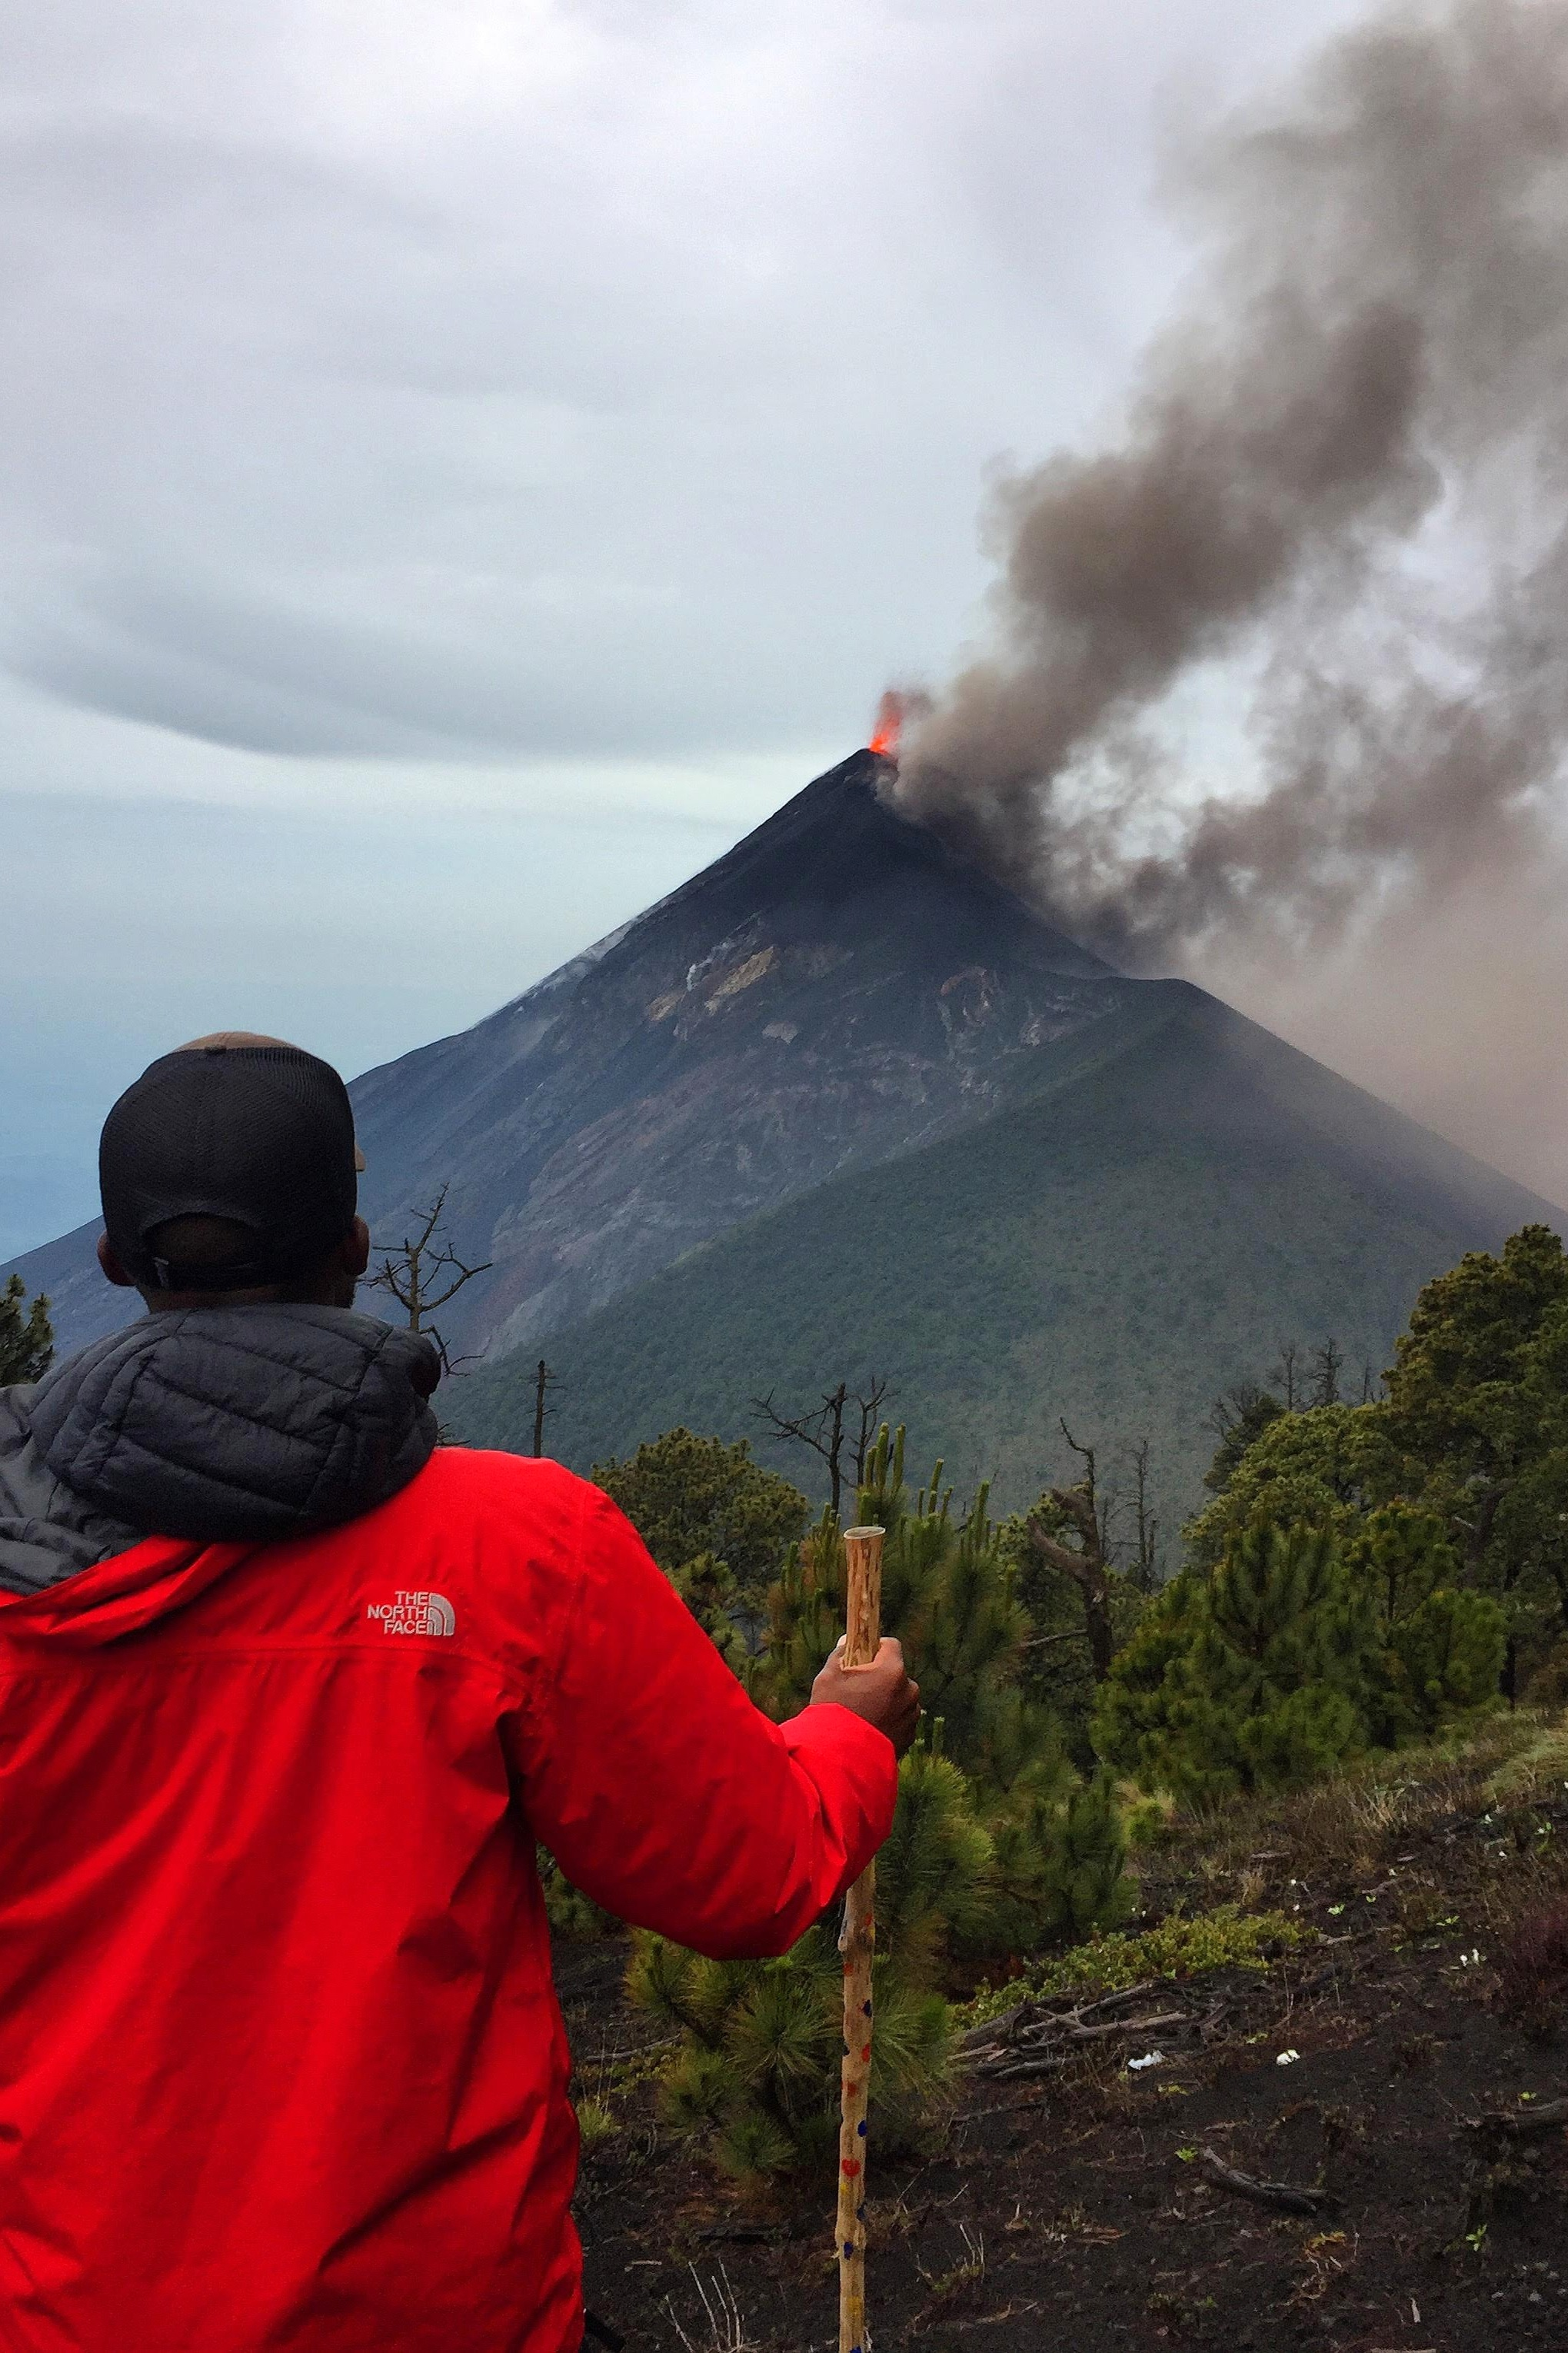 Hiking Volcan Acatenango | Adventure Travel Guide - The epic 2 Day hike up Guatemala's Acatenango Volcano